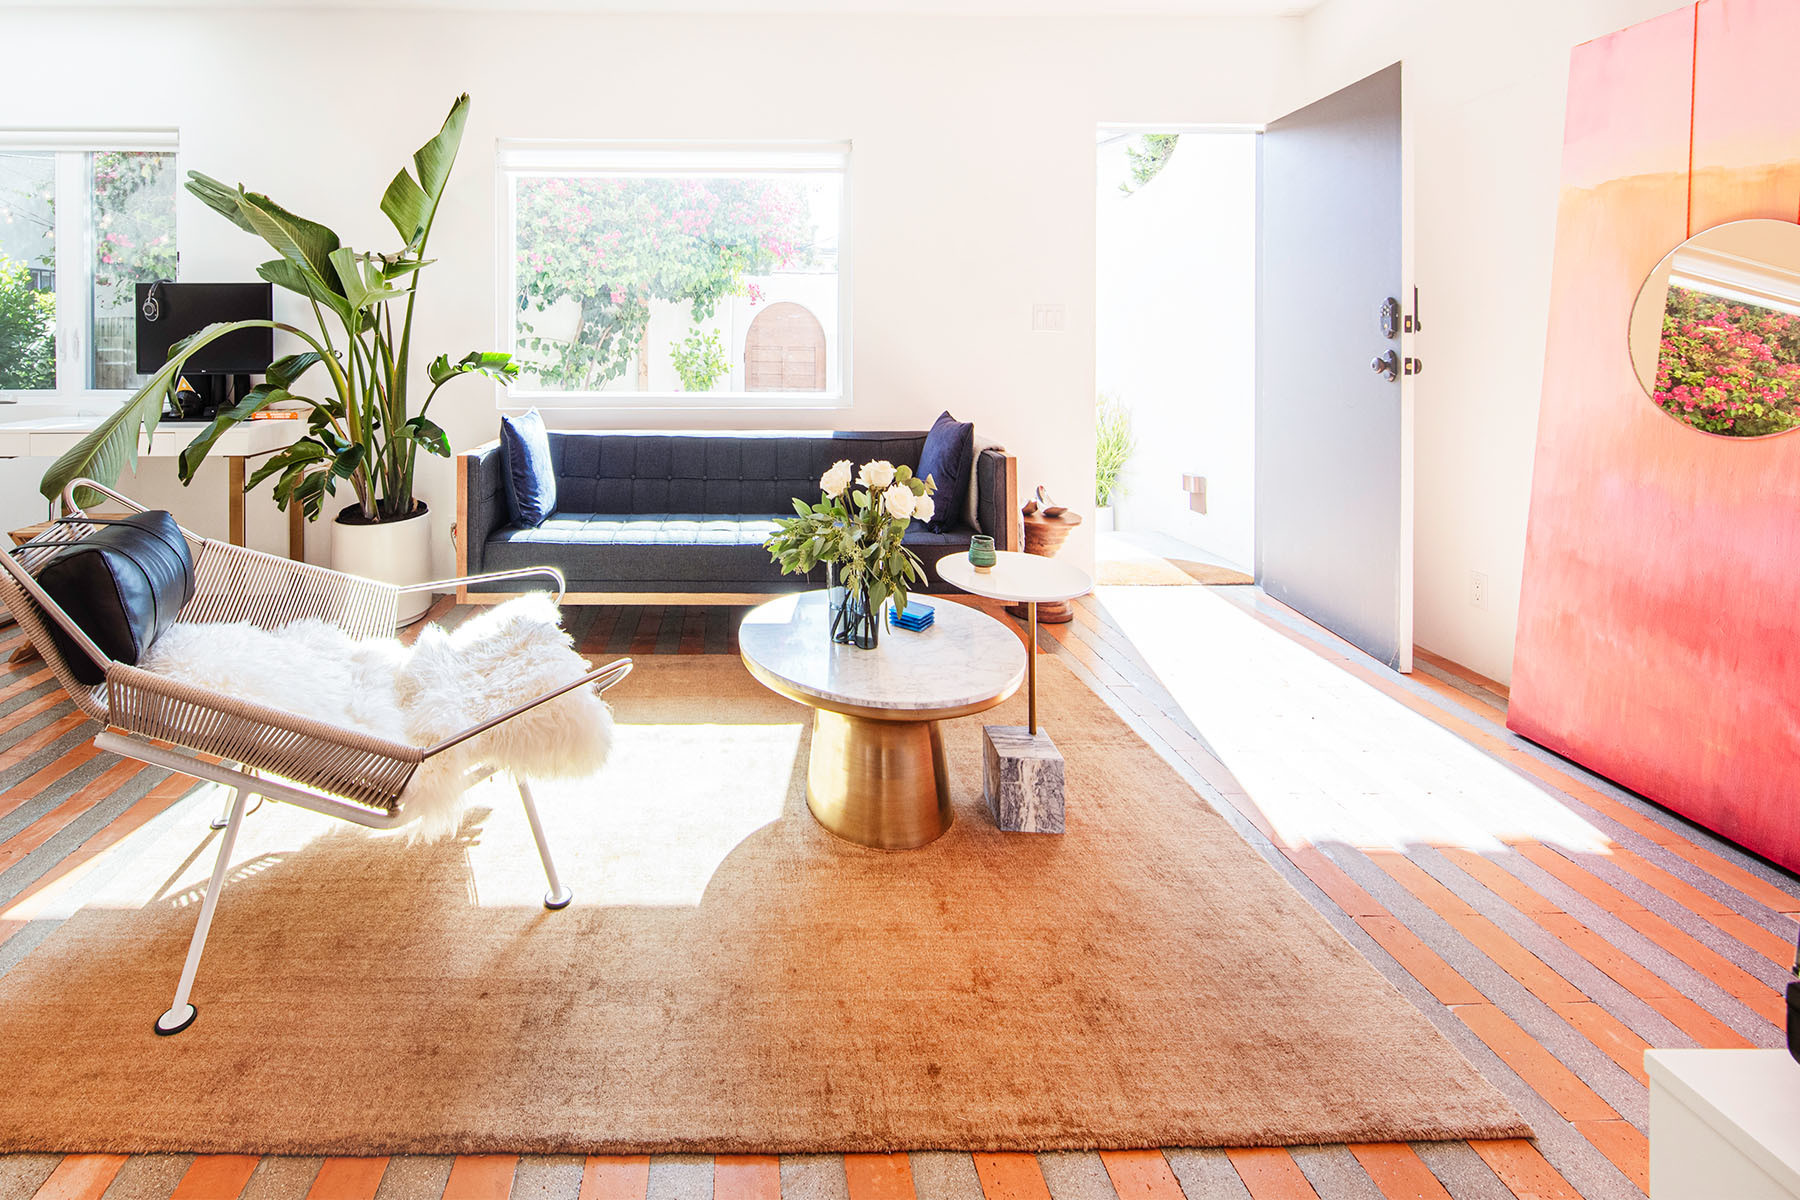 A sunlit living space completes the indoor-outdoor vibe for this L.A. jewelry designer. Flag Halyard Armchair | West Elm Rug | West Elm Mirror | Mounser Studio Artwork | IKEA Shelves | Vintage Baskets | West Elm Coffee Table | Georg Jensen Bowls | Alvar Aalto for Iittala Planters.